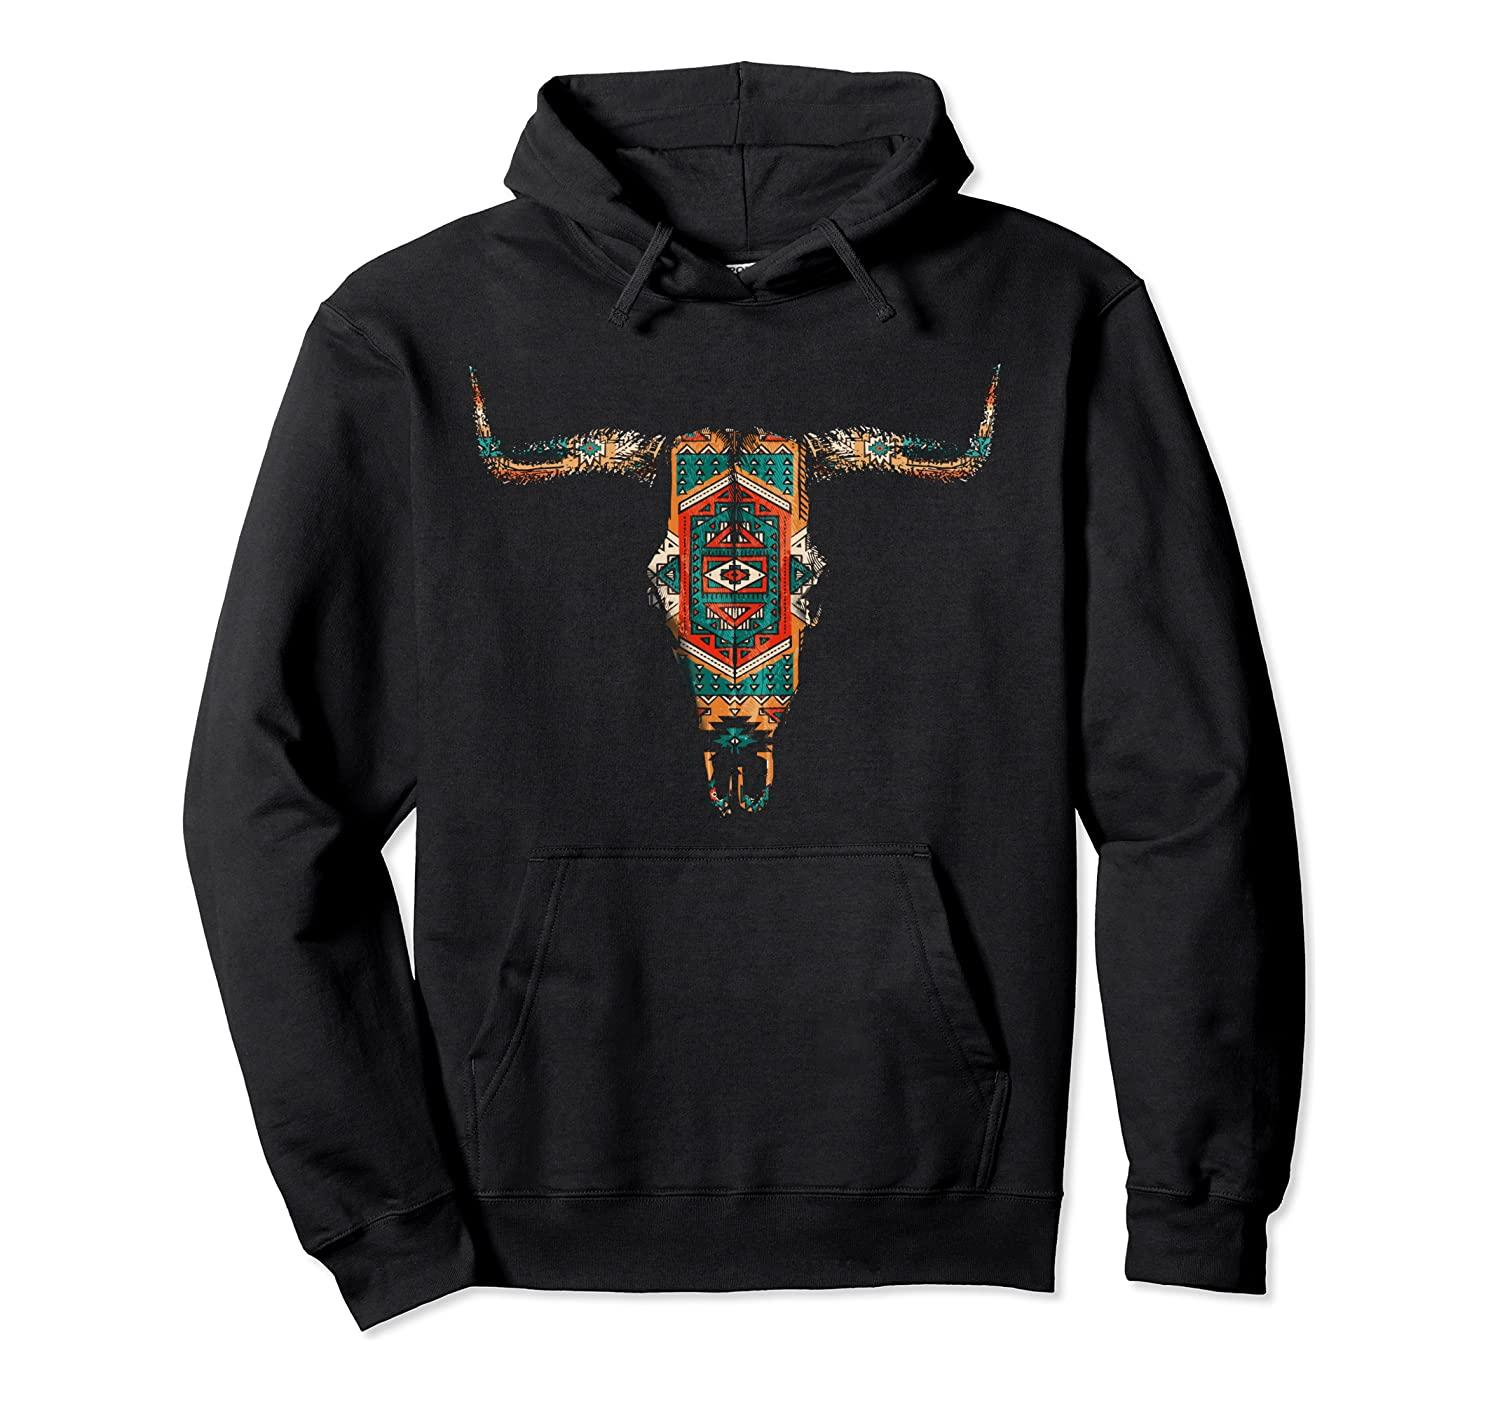 Vintage Aztec Indian Pattern Bull Skull Cowgirl Pullover Hoodie Unisex Size S-5XL with Color Black/Grey/Navy/Royal Blue/Dark Heather